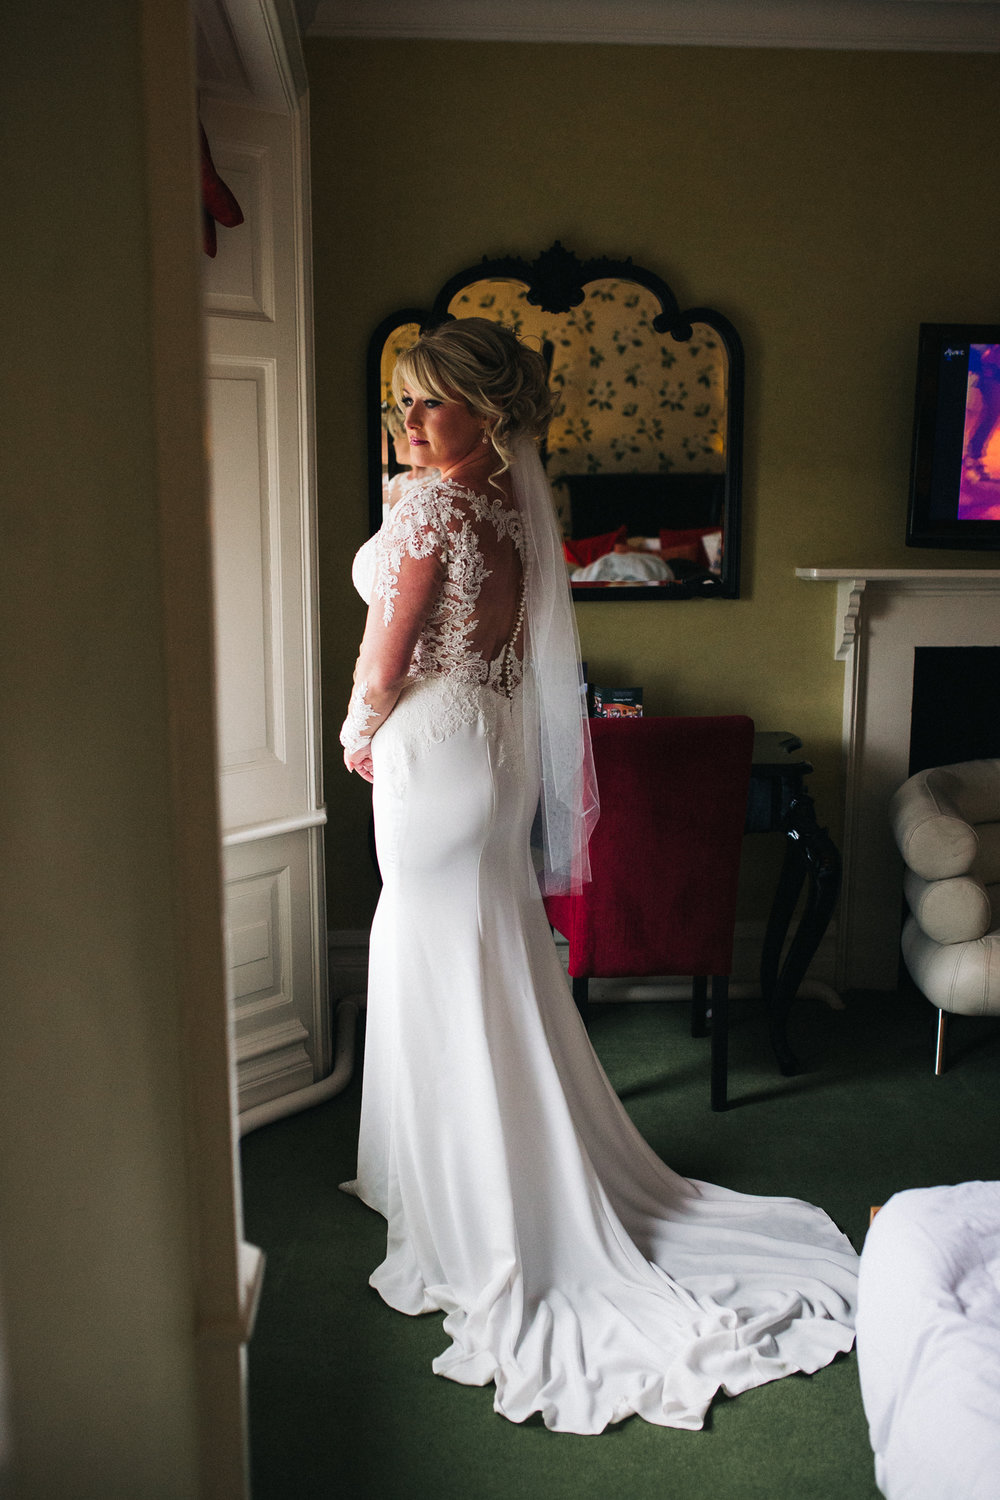 a portrait shot of the bride in her wedding dress looking out of the window. cleveland tontine wedding teesside north yorkshire - relaxed and creative wedding photographer